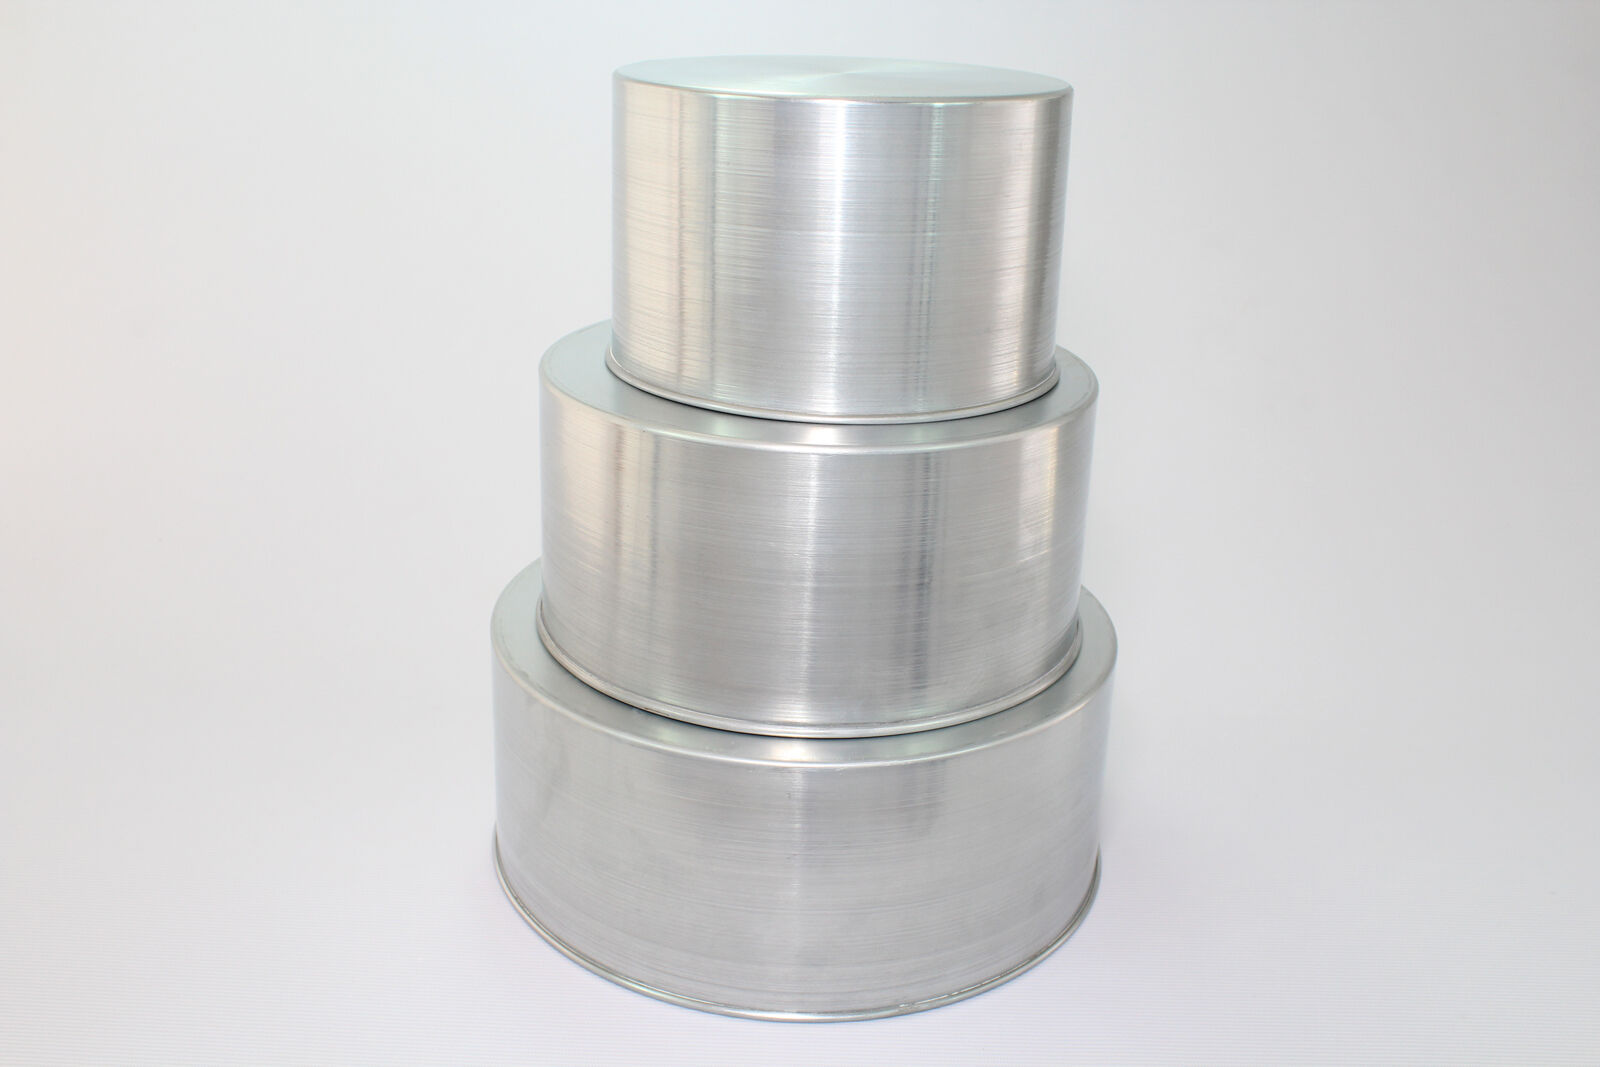 Round Cake Baking Tins - 4  Deep - 3 Tier ( 6 9 12  )